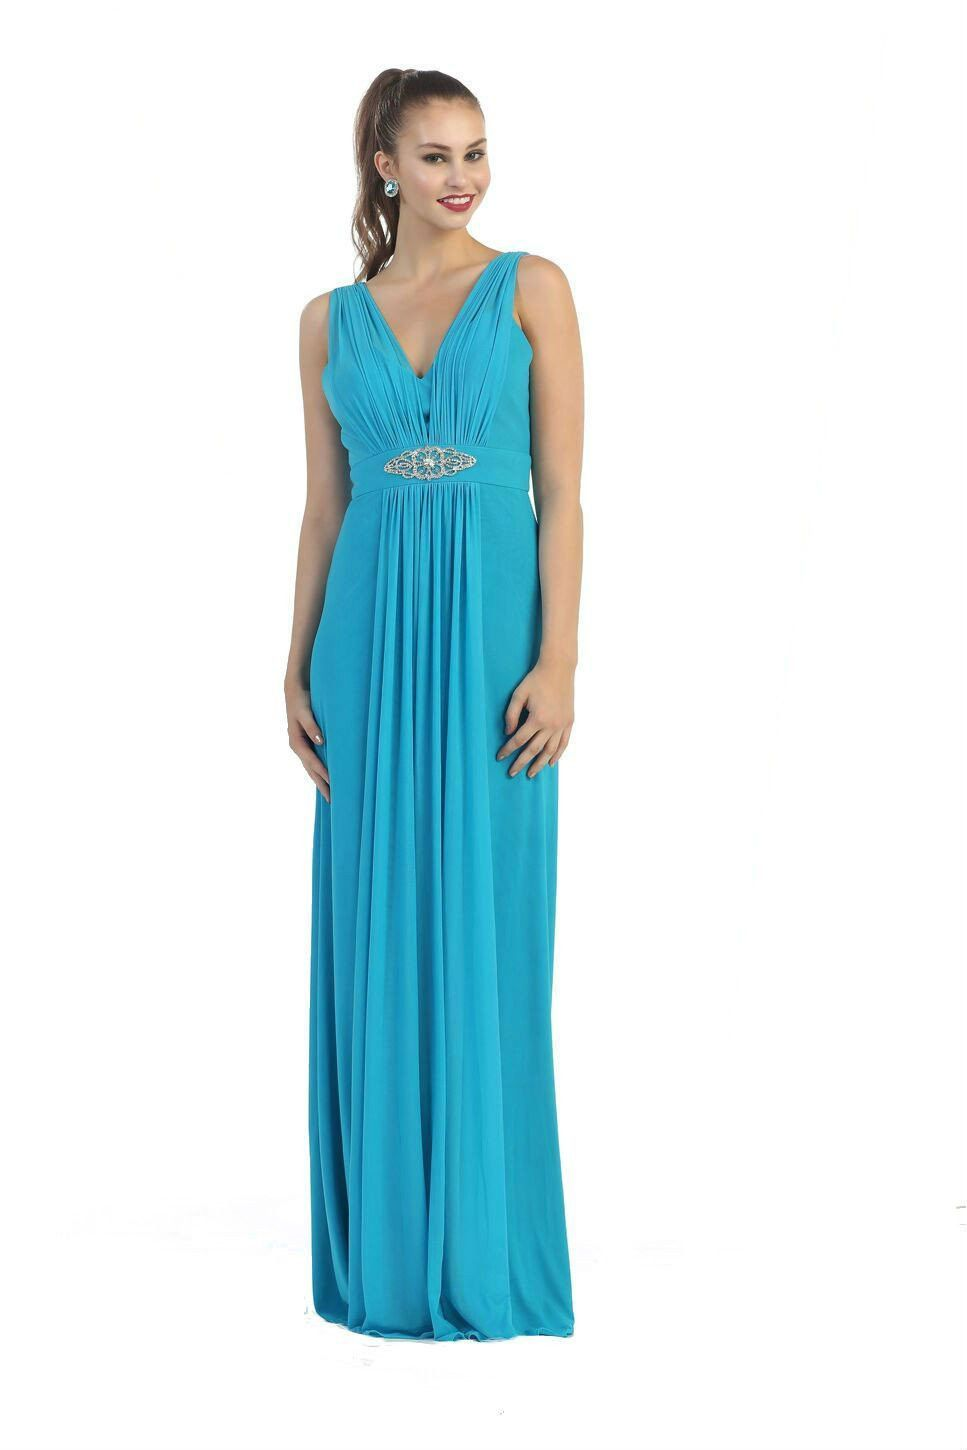 Outstanding Evening Gowns For Wedding Guests Crest - All Wedding ...